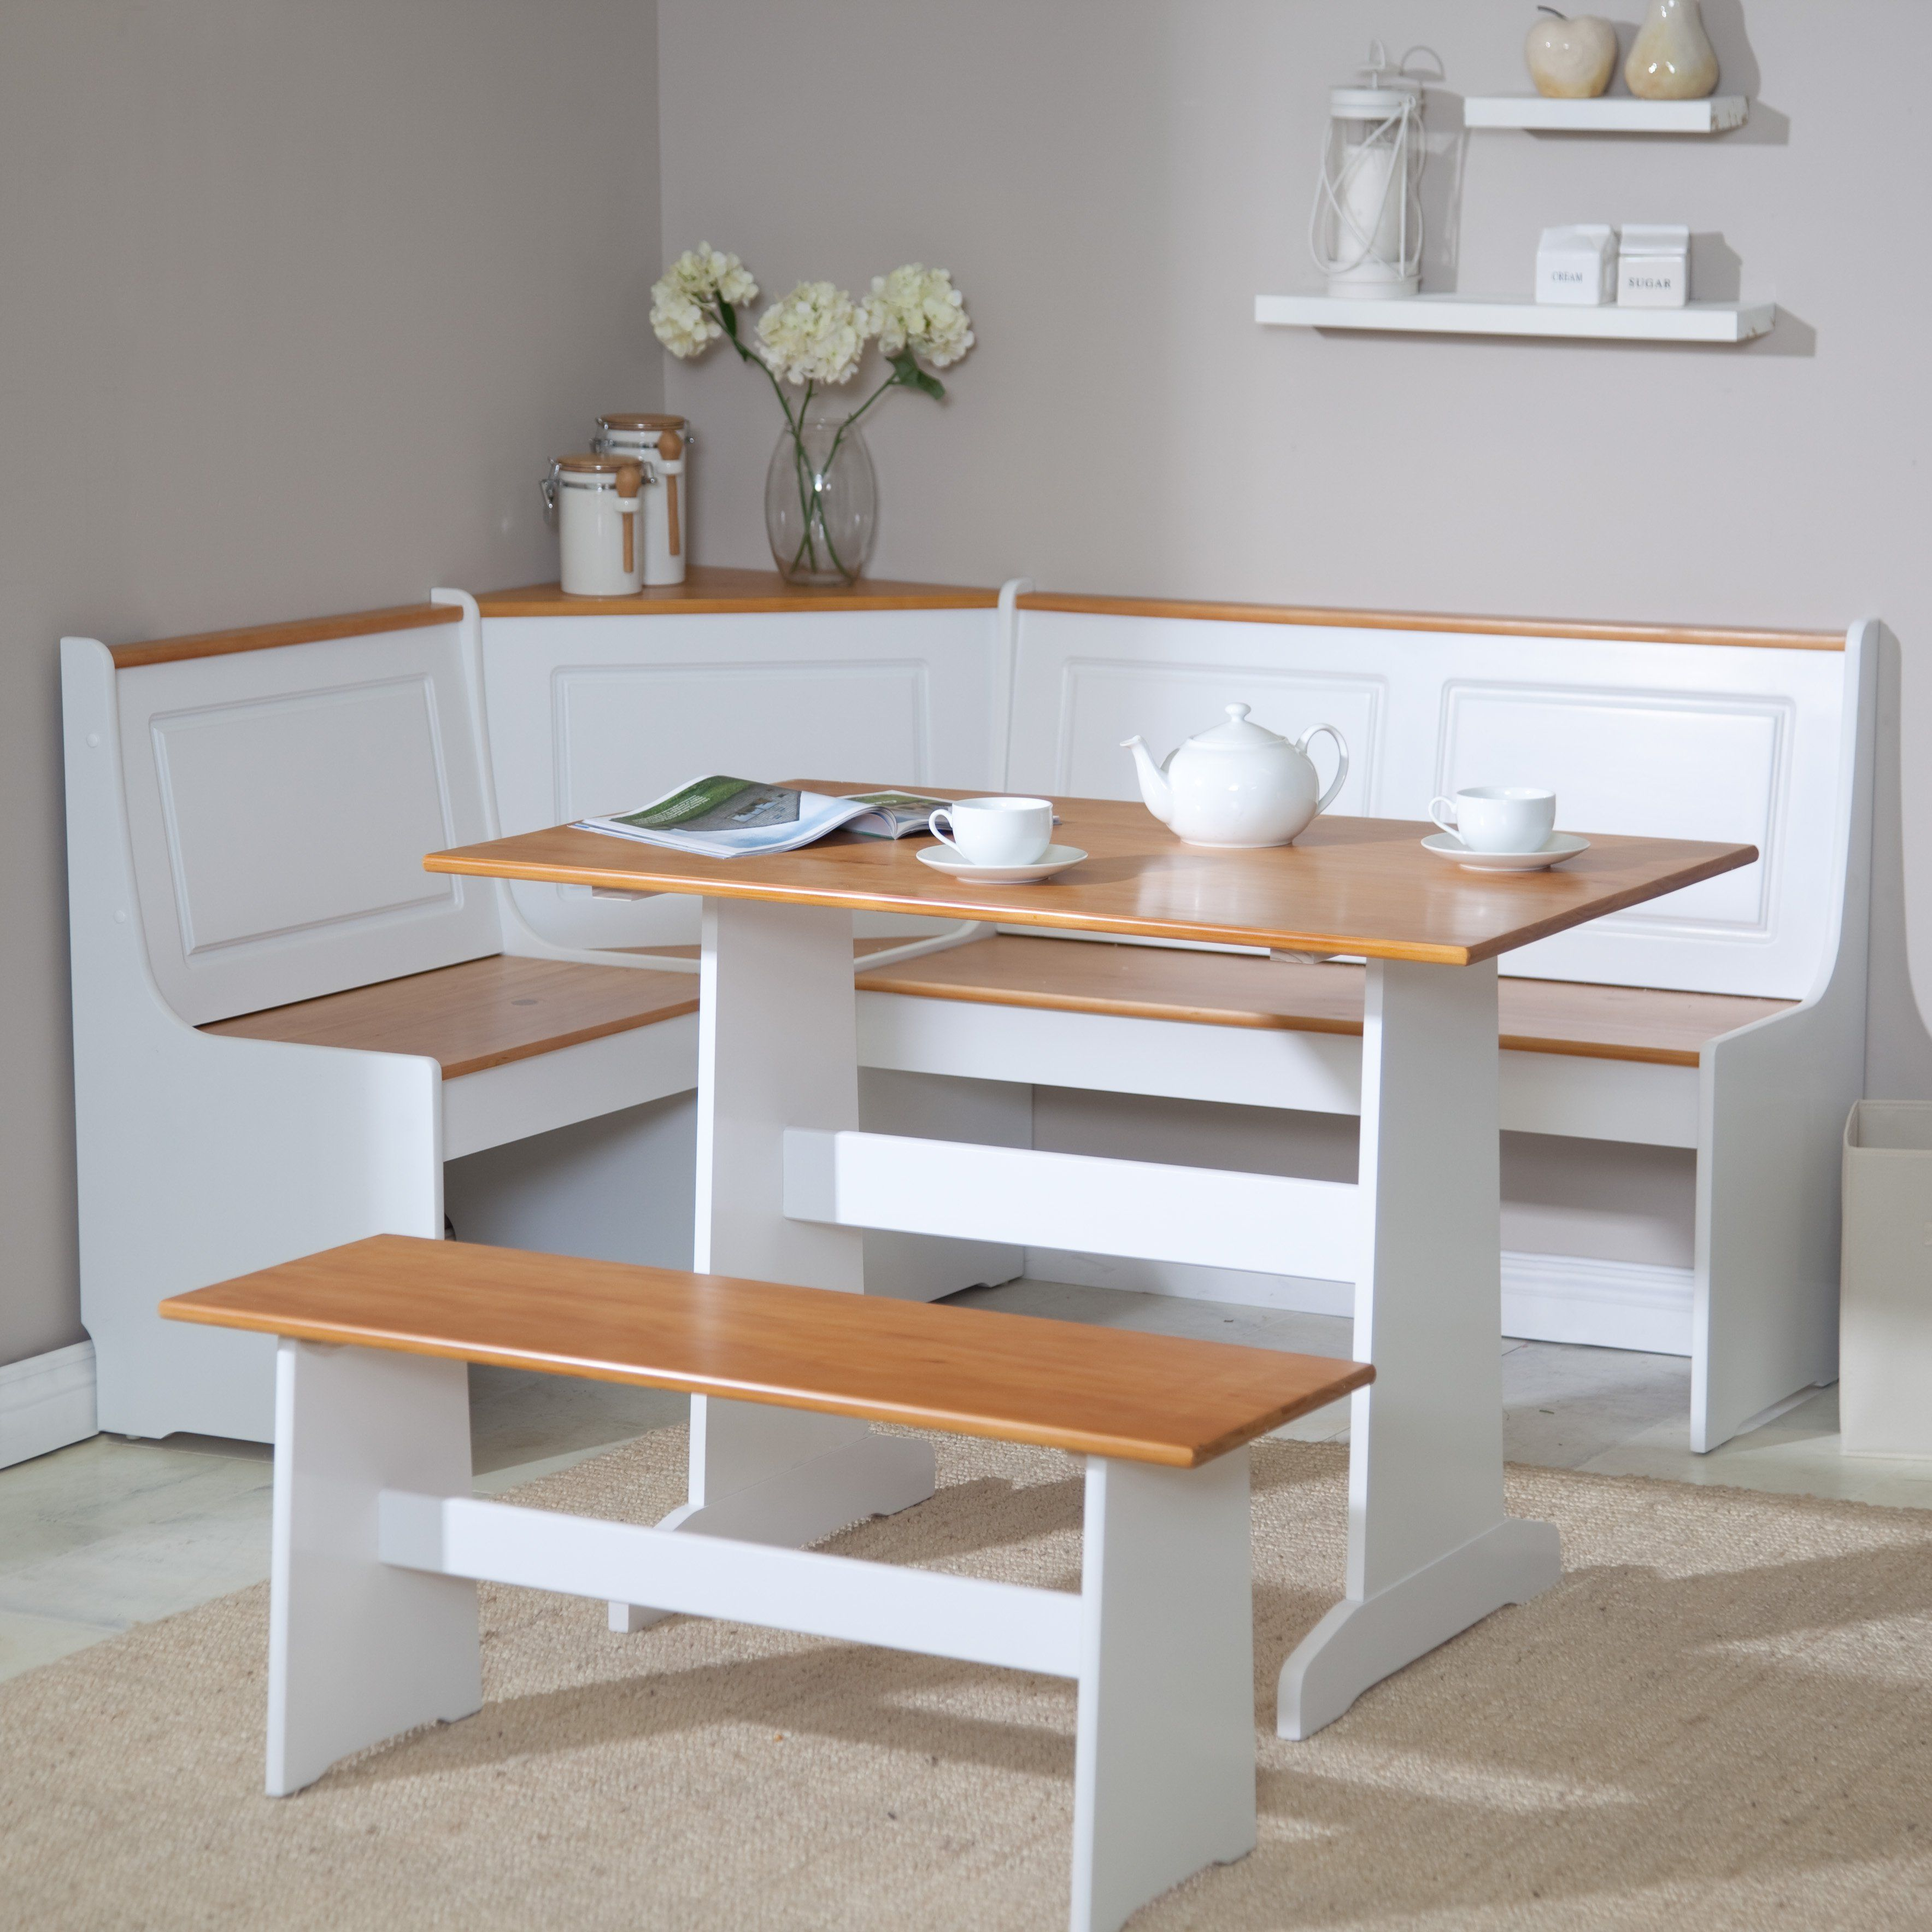 fascinating Ardmore Breakfast Nook Set Part - 1: Ardmore Nook Set - LHD419